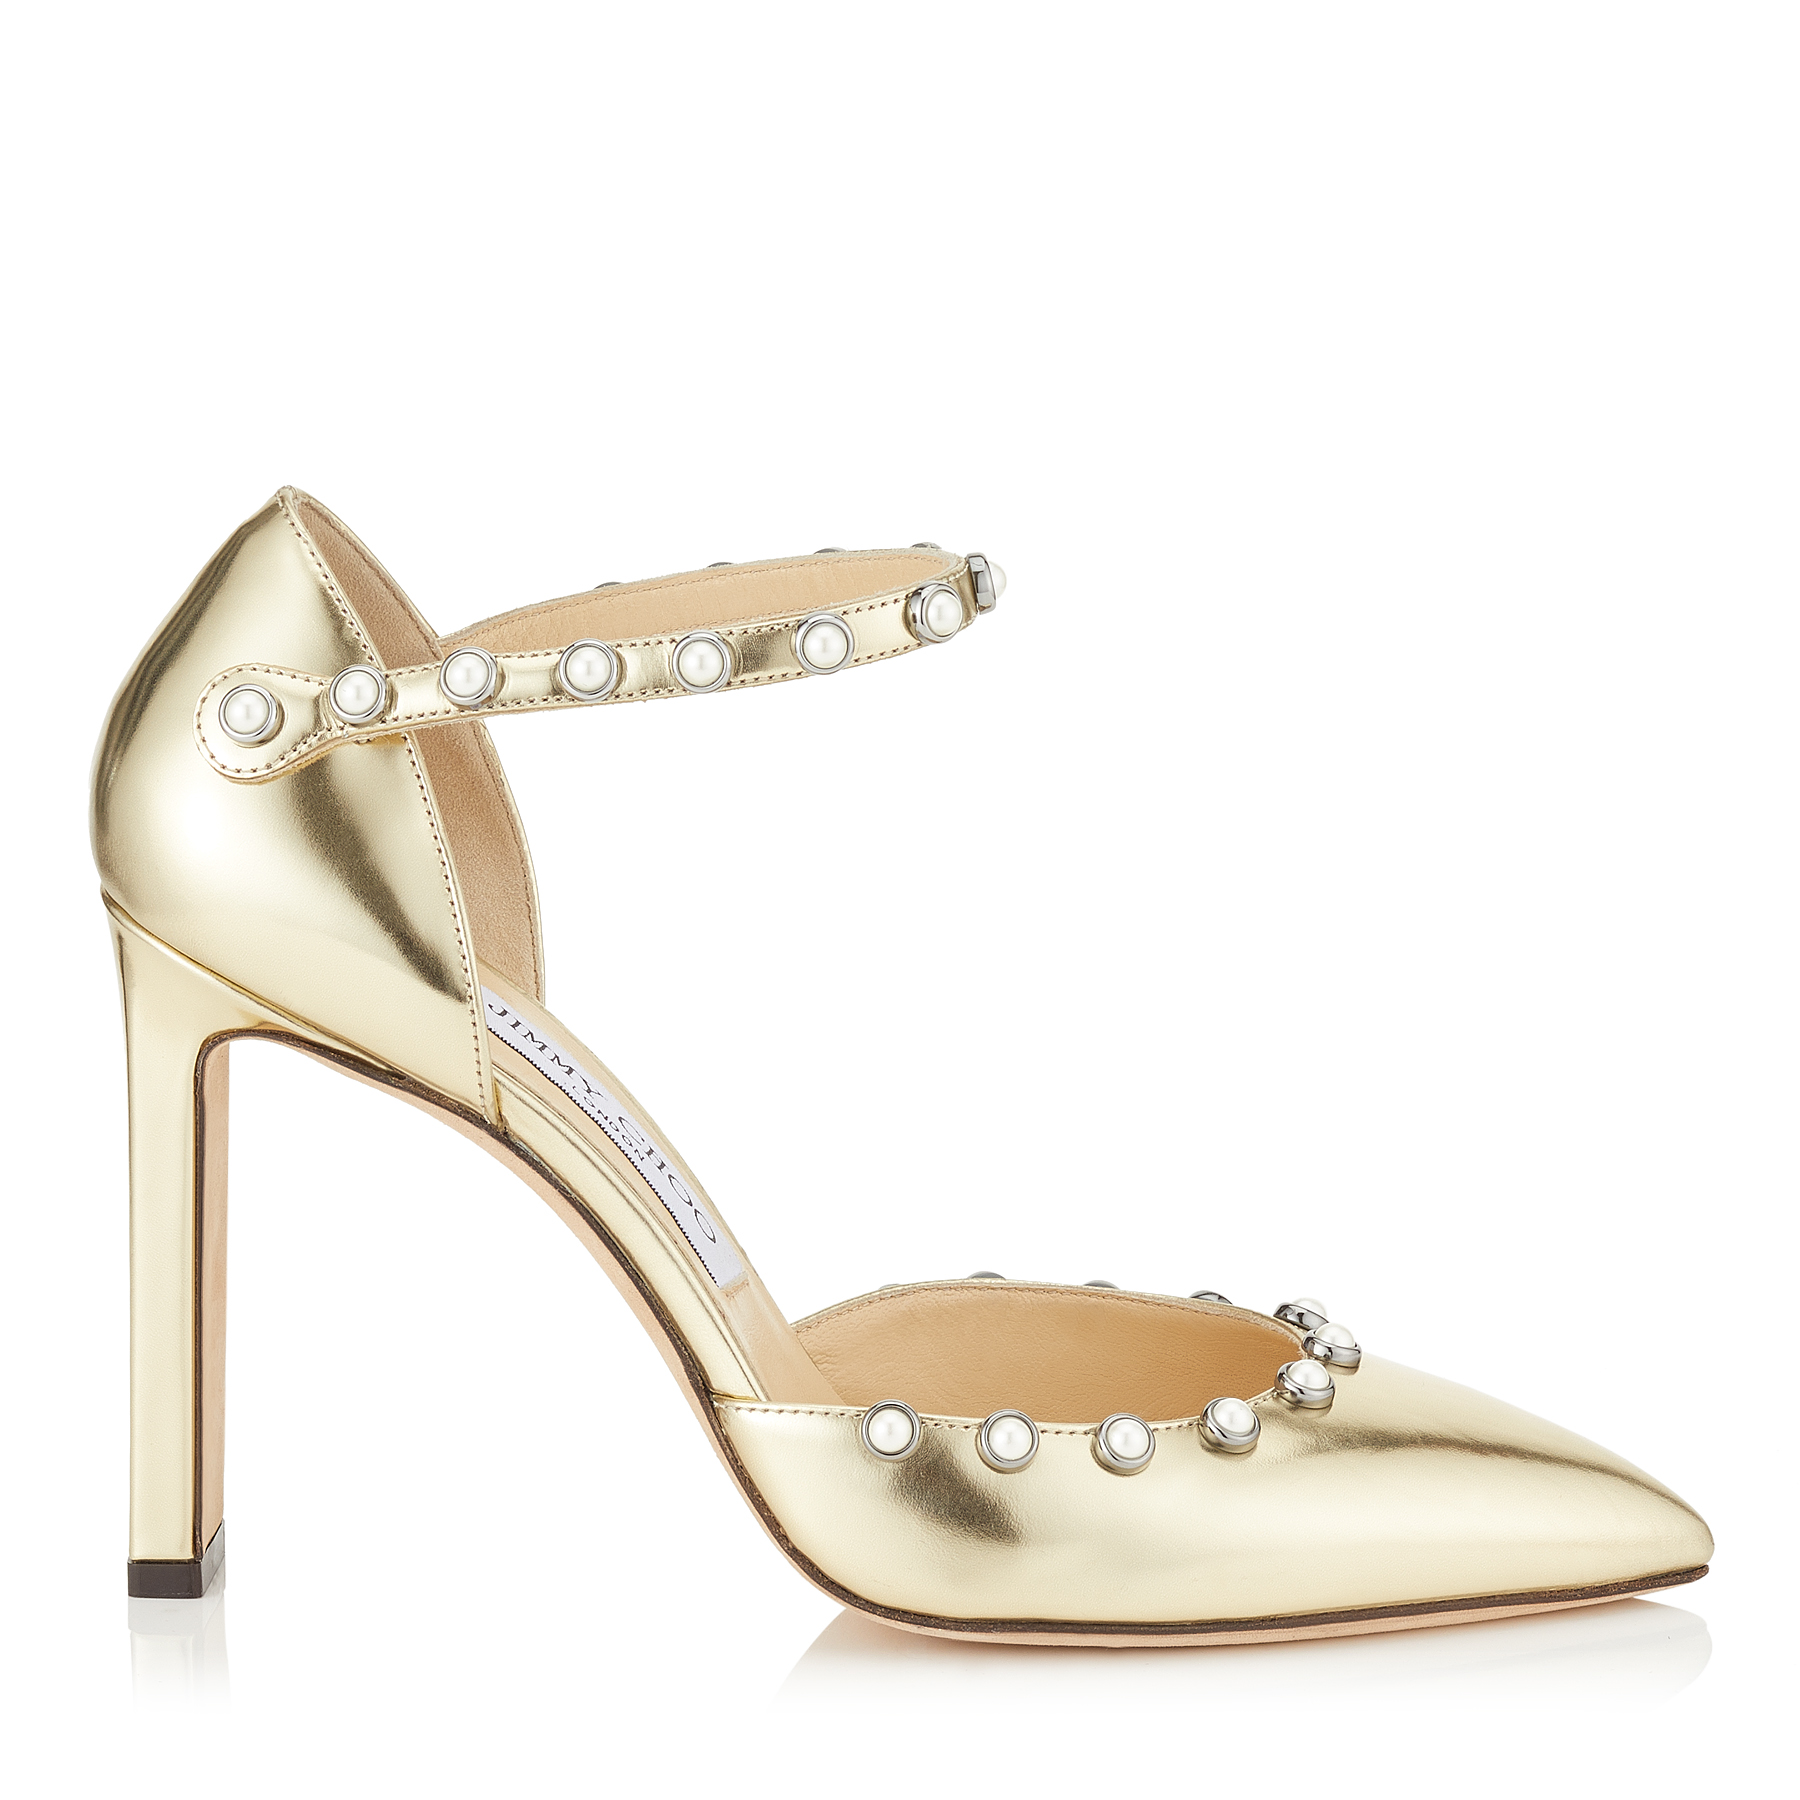 LEEMA 100 Gold Mirror Leather Pumps with Beads by Jimmy Choo